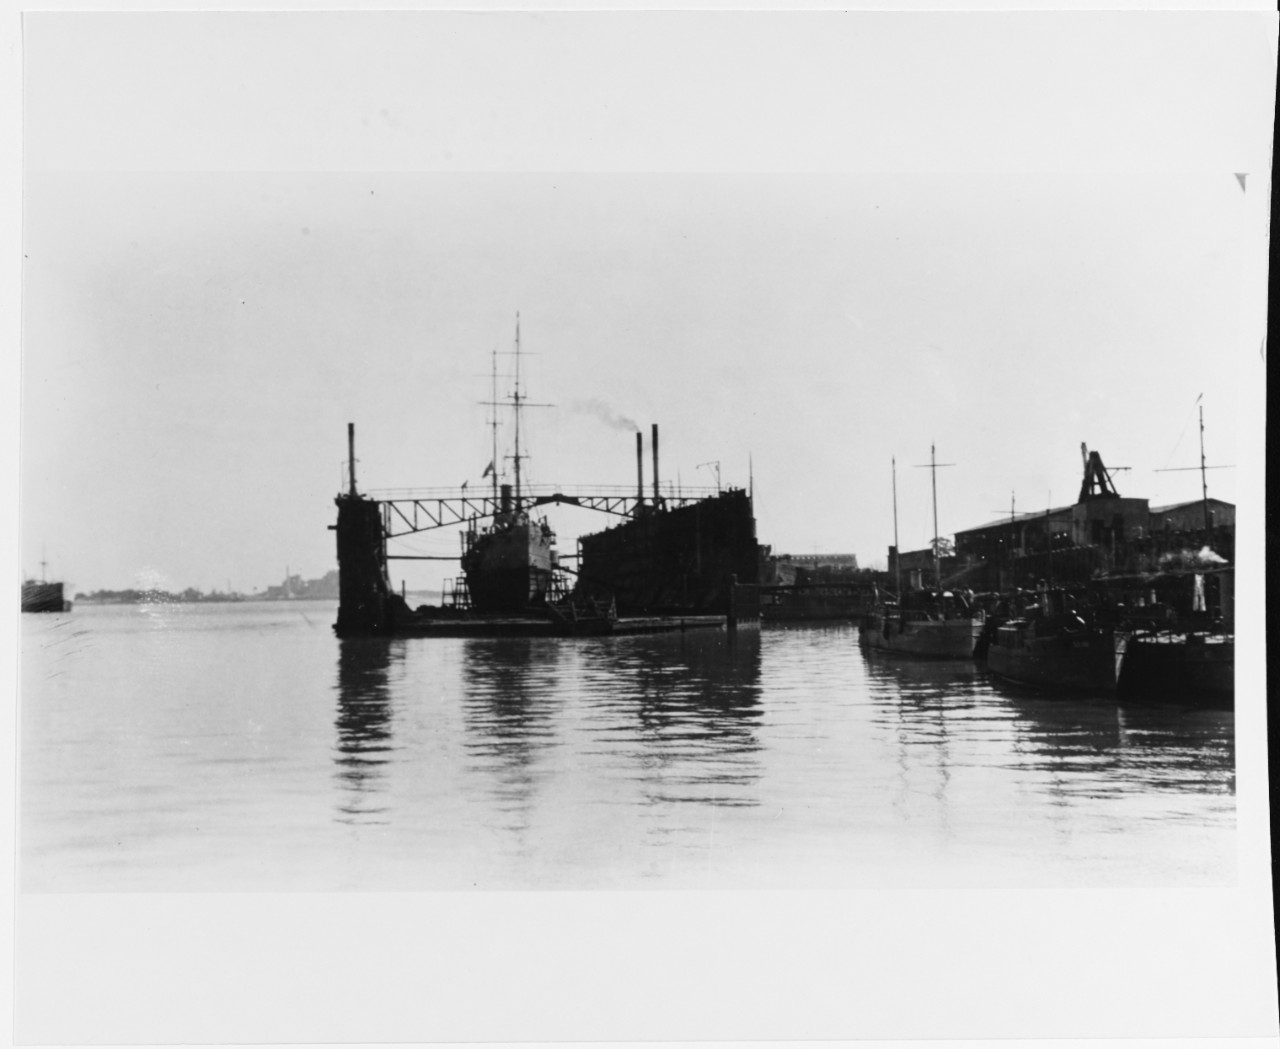 In floating drydock at the New Orleans Naval Station, January 1918. Note SP boats. Courtesy of John G. Krieger, 1967 NH 43471